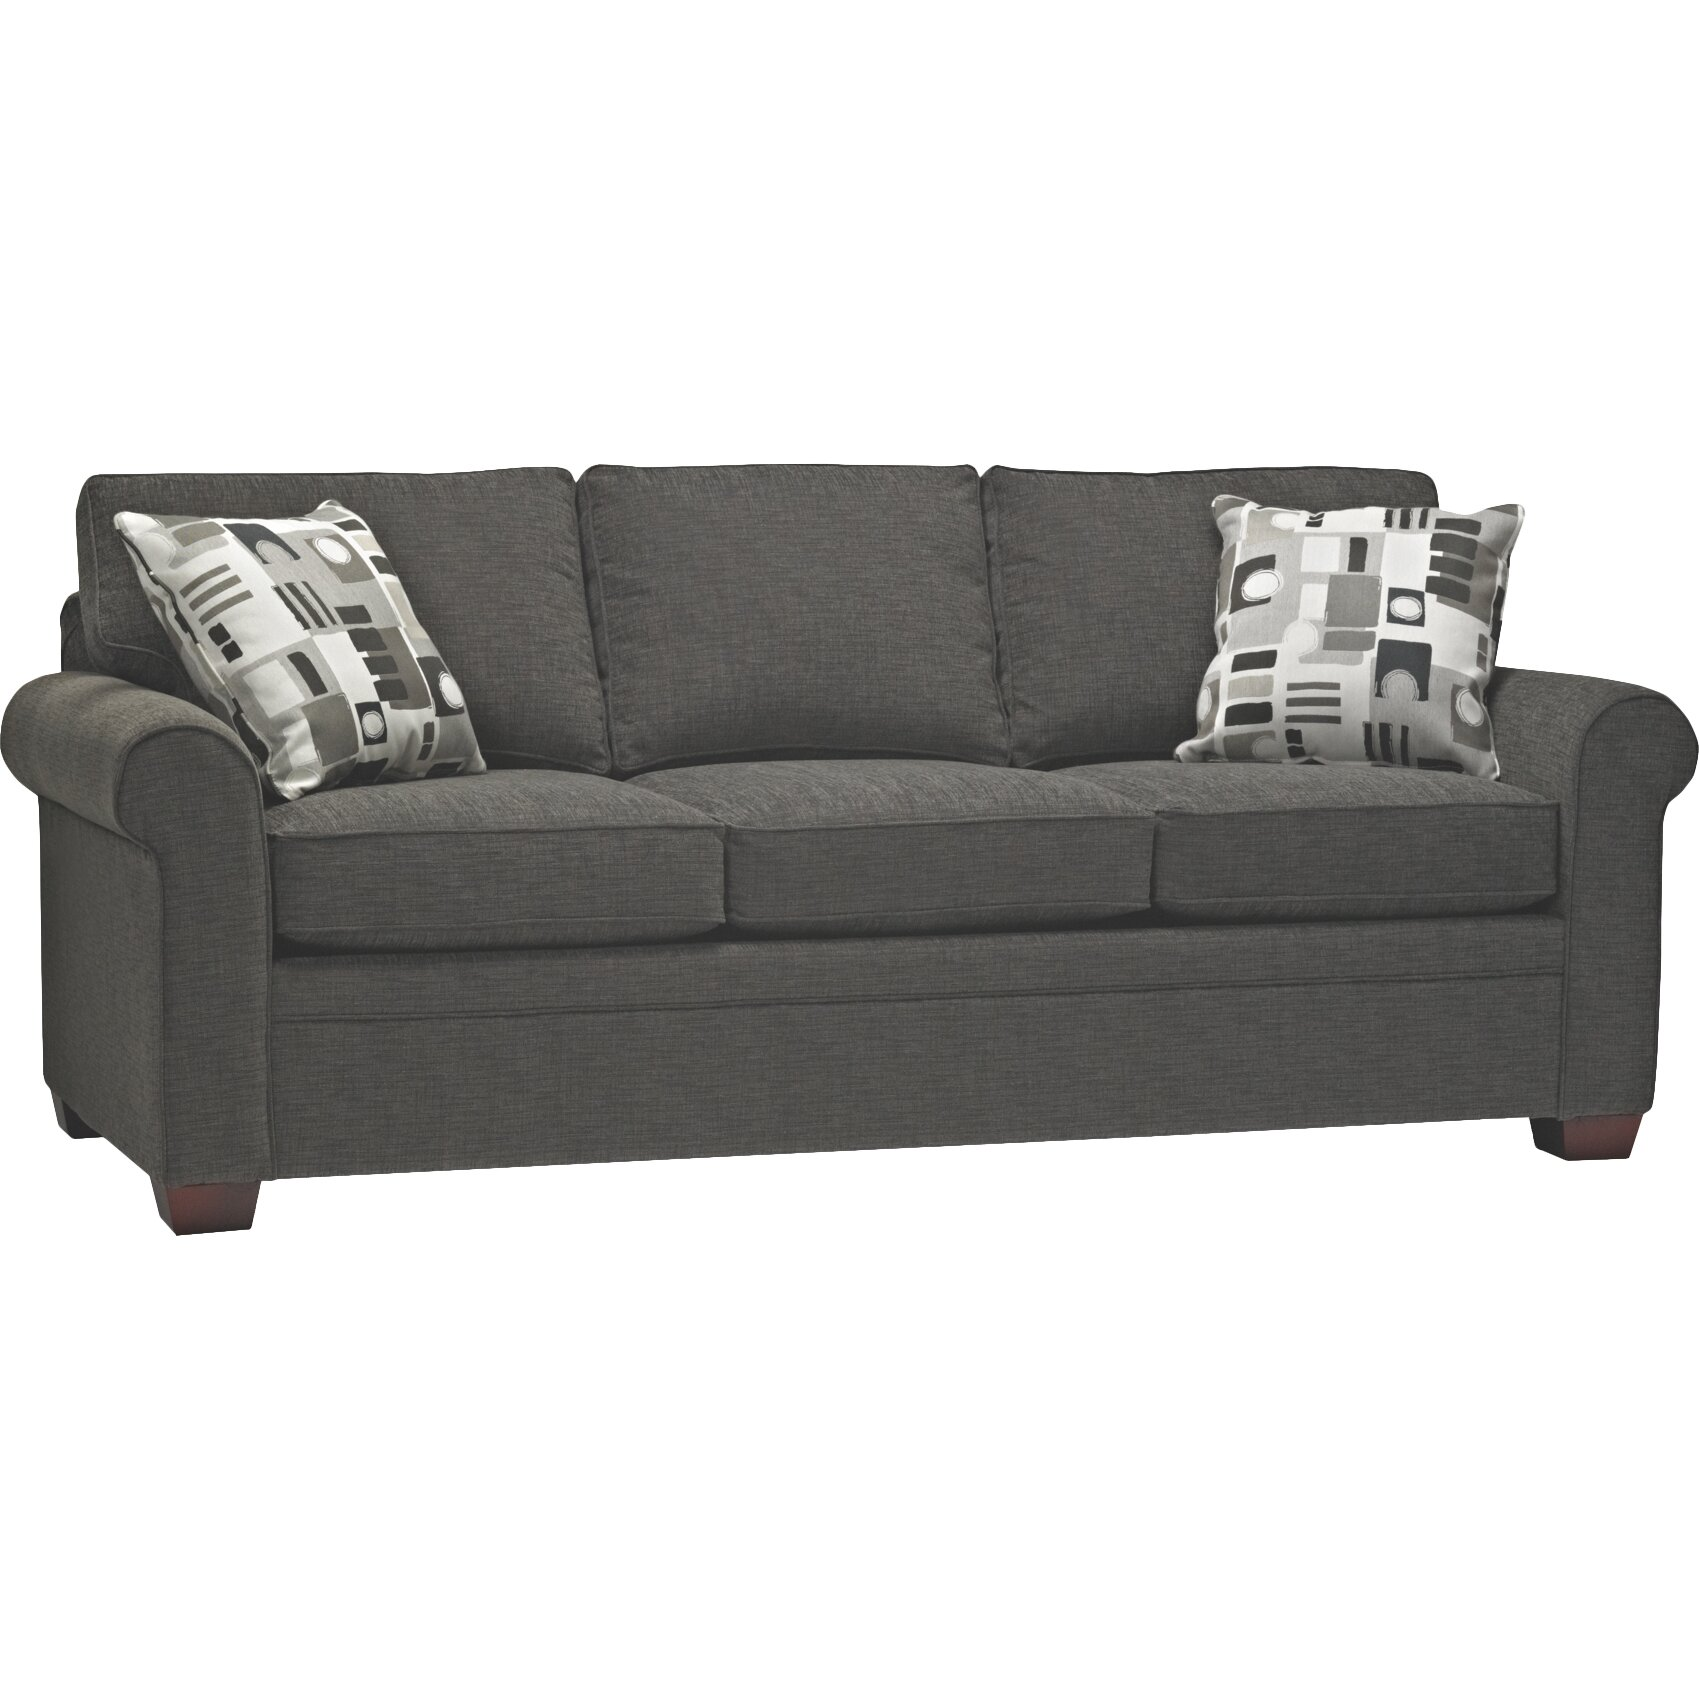 Sofas to go tom double sleeper sofa wayfair for Double divan size